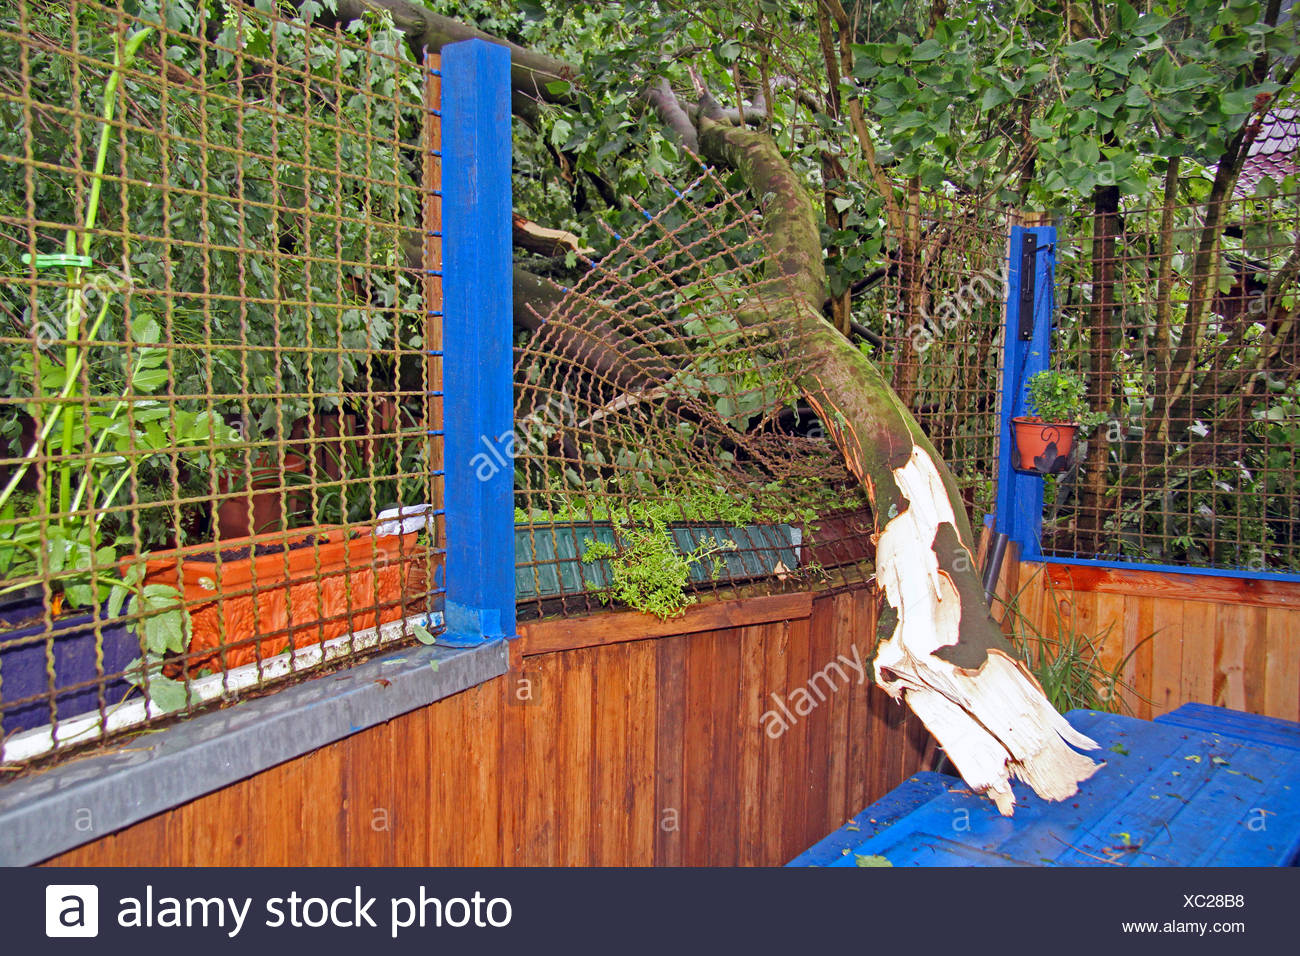 fallen branch of a tree had demolished an iron fence, storm front Ela at 2014-06-09, Germany, North Rhine-Westphalia, Ruhr Area, Essen - Stock Image